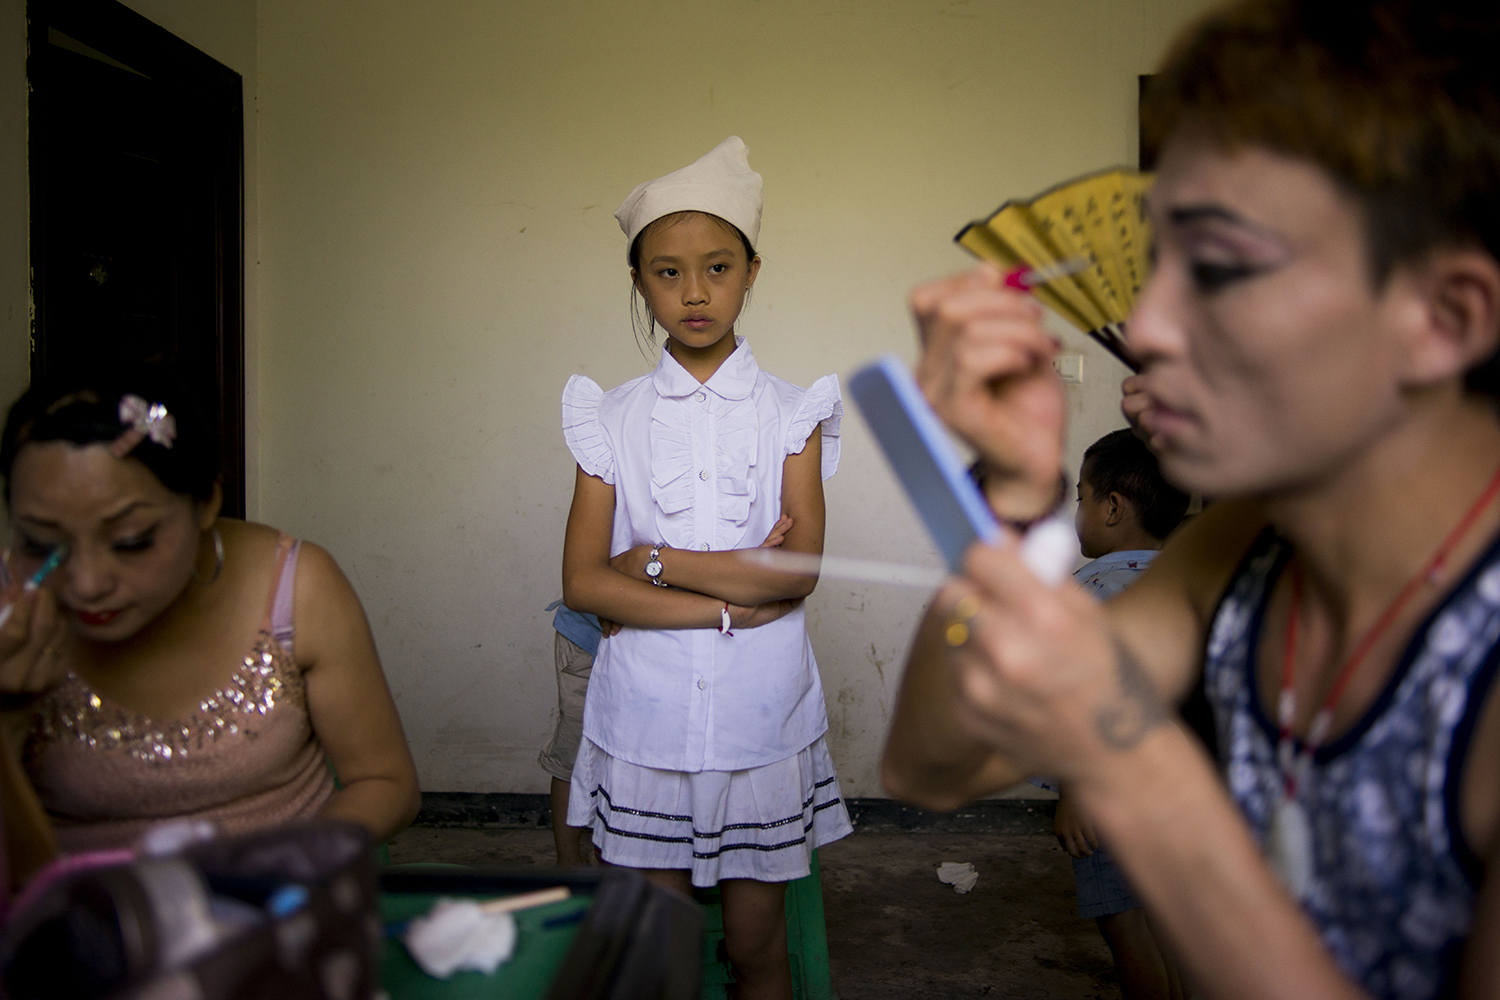 A girl watches Liangzi putting on makeup before a funeral performance, Dazu district of Chongqing municipality, July 24, 2016.